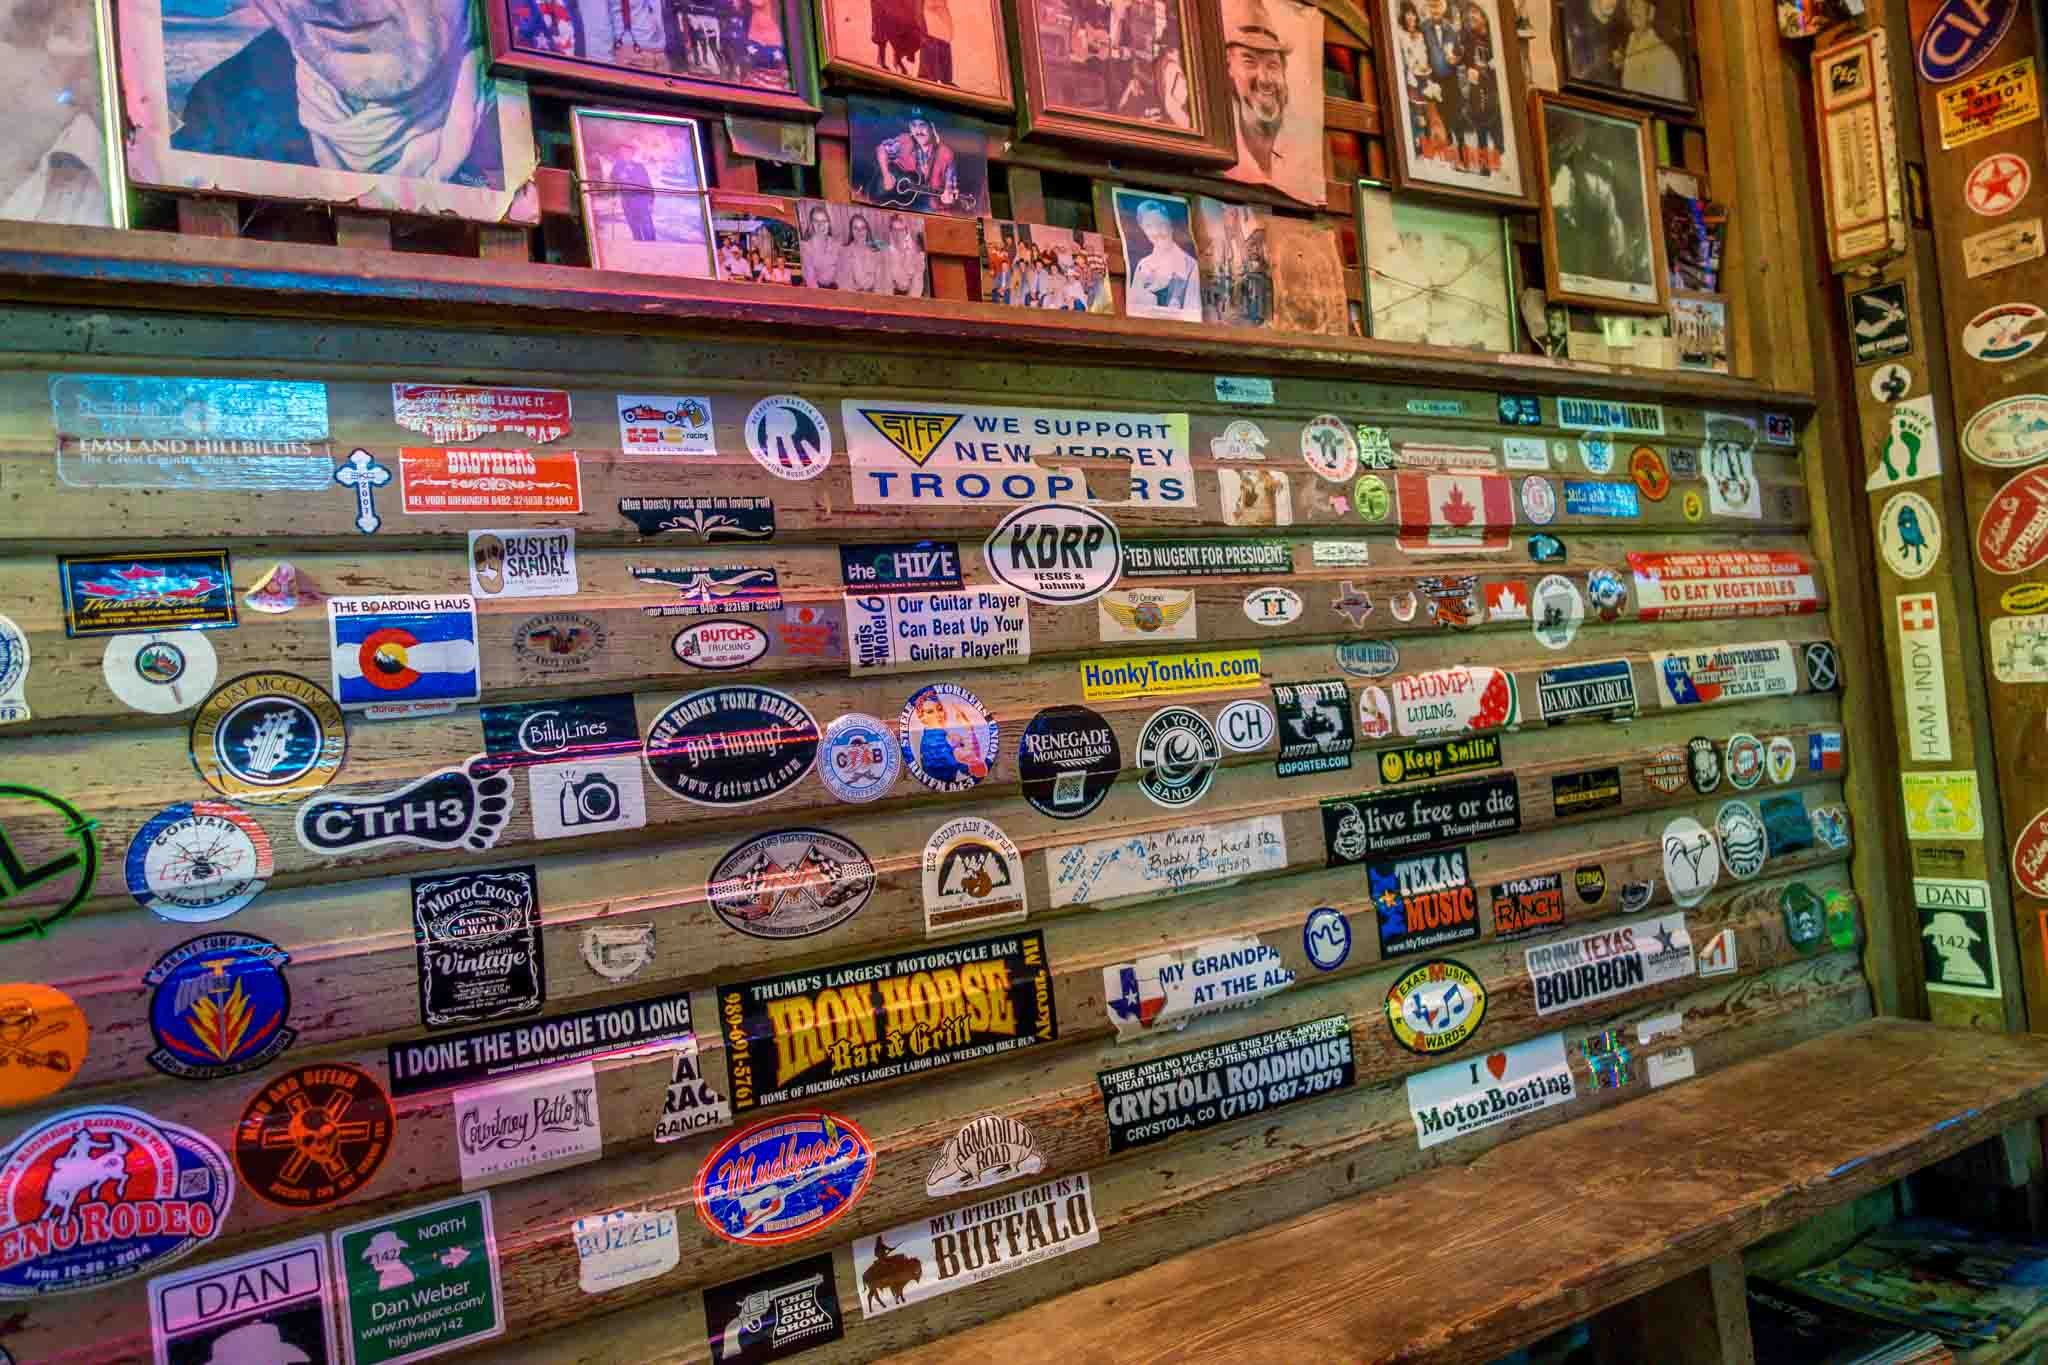 Bumper stickers on the wall